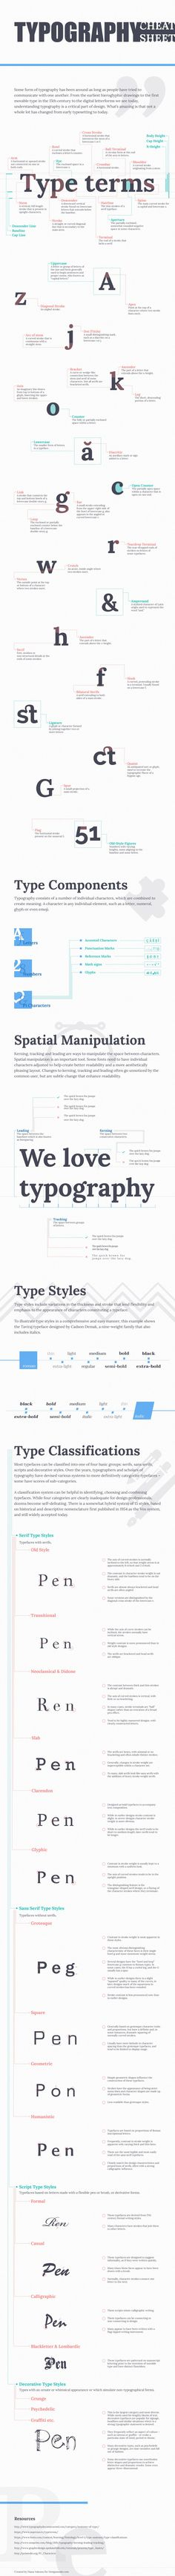 Typography Cheat Sheet [Infographic] - http://designmodo.com/typography-cheat-sheet/